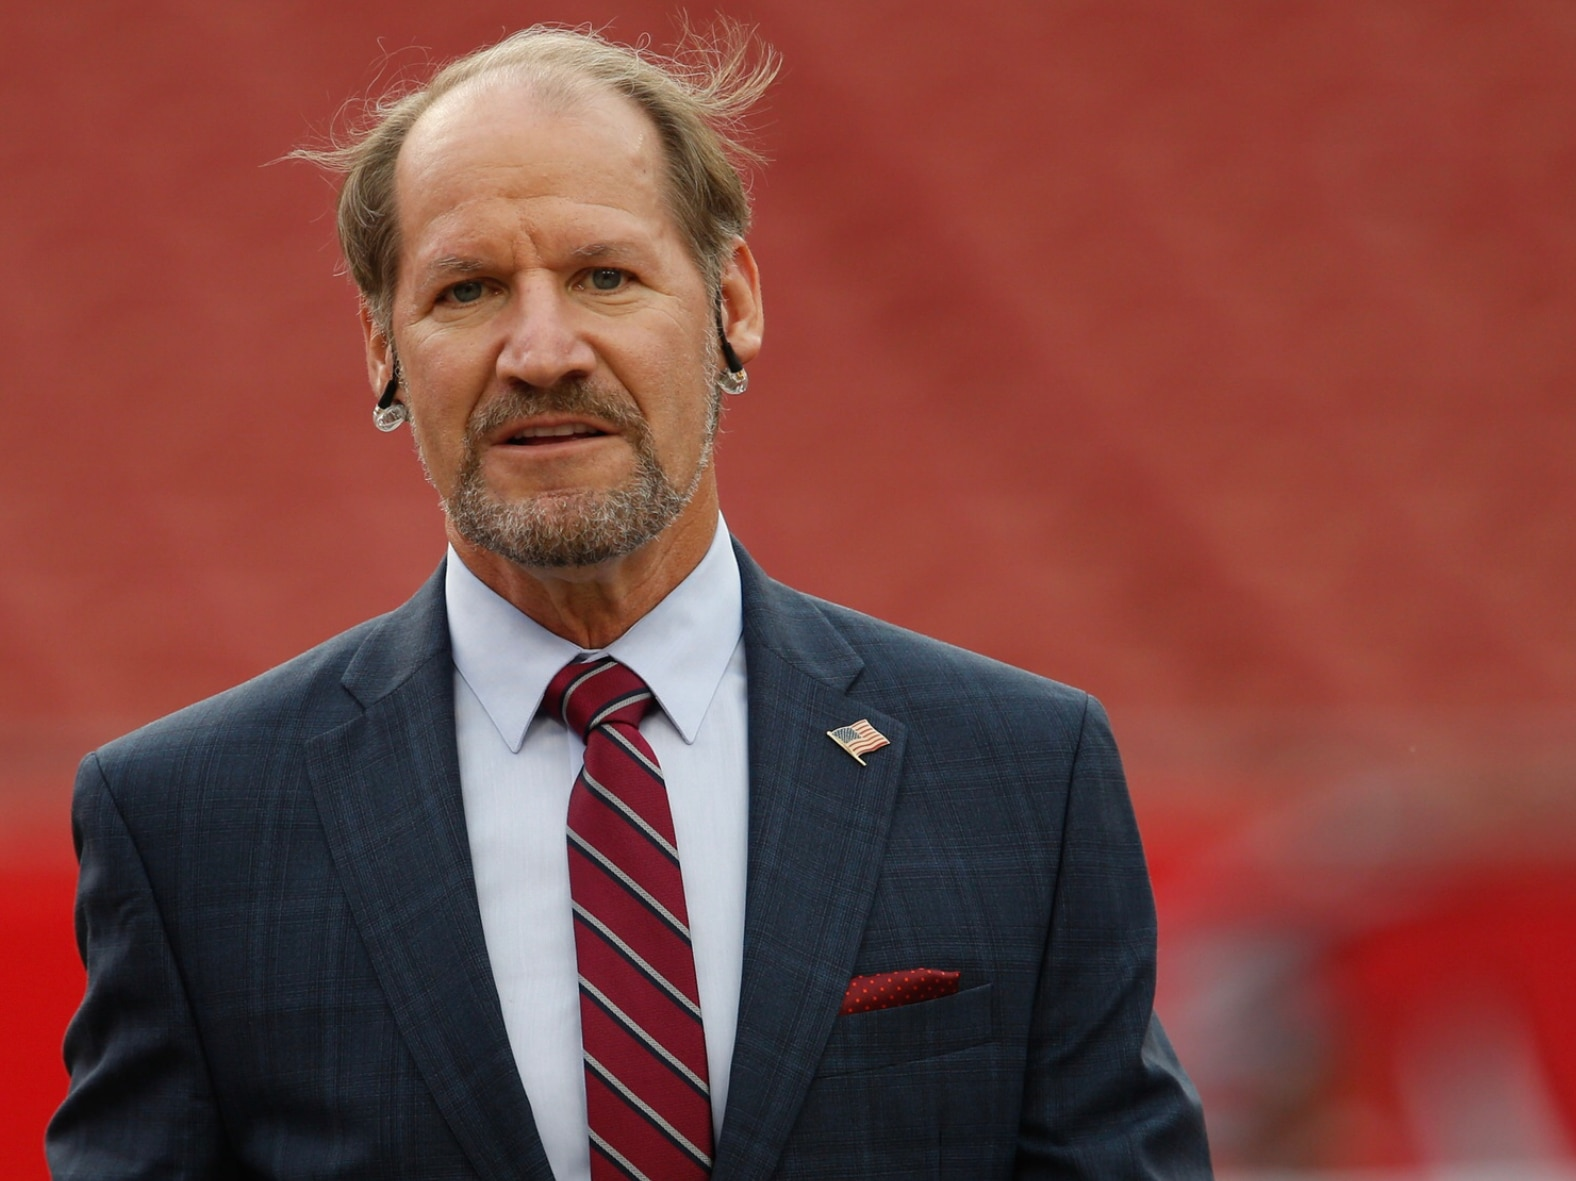 Steelers to induct former head coach Bill Cowher into Hall of Fame